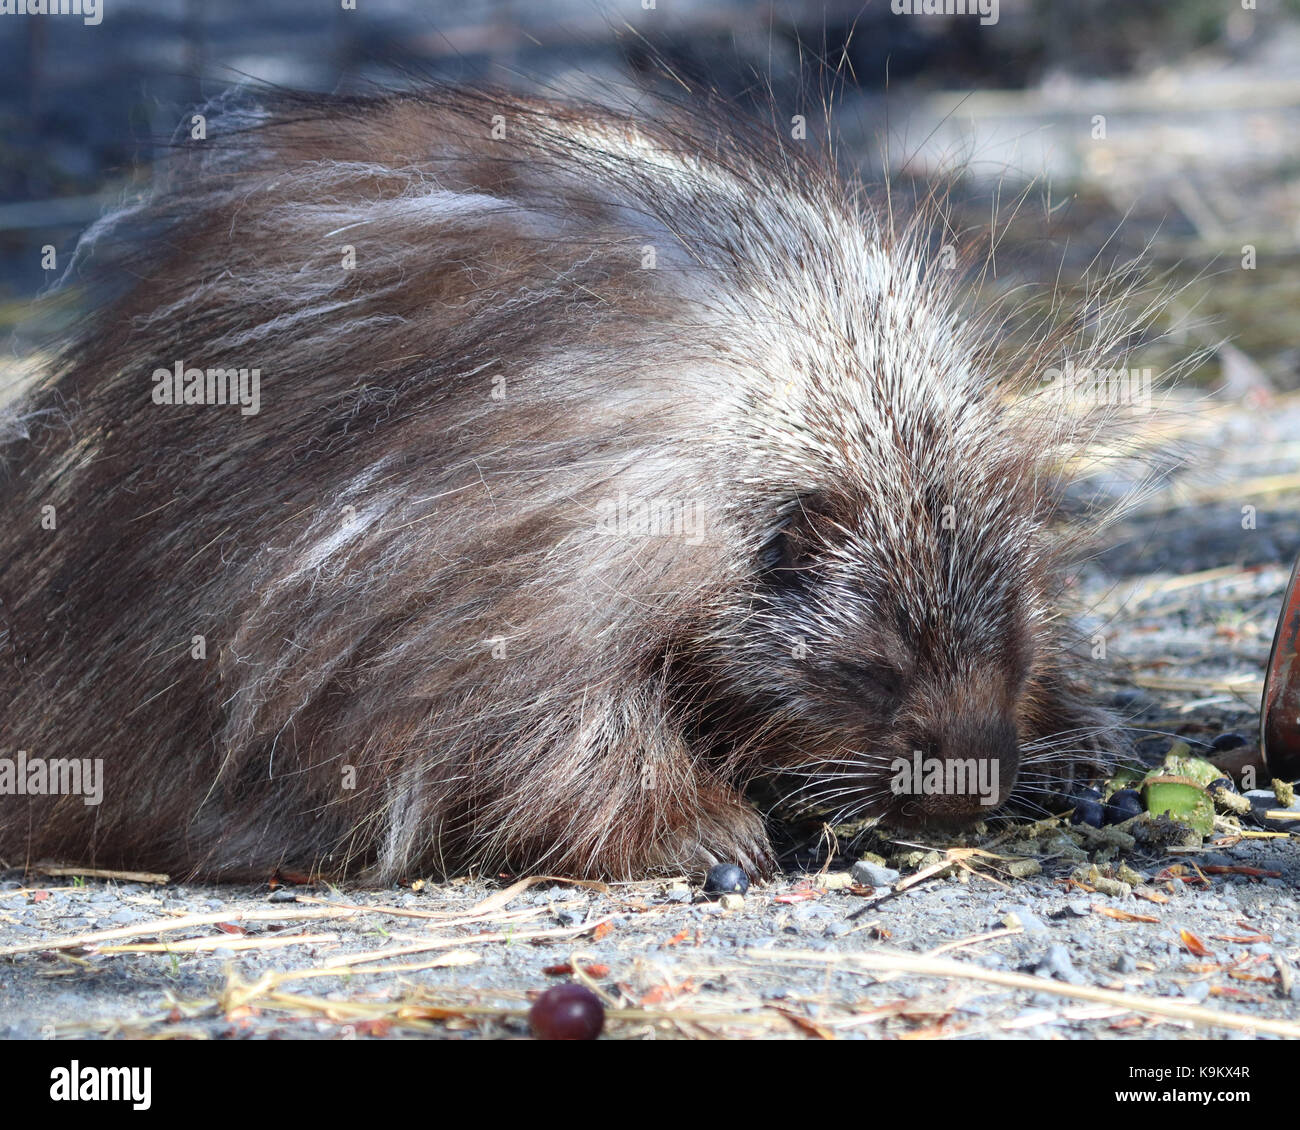 Snickers the famous Porcupine at Alaska Wildlife Conservation Center. He became famous when a You-tube video of - Stock Image